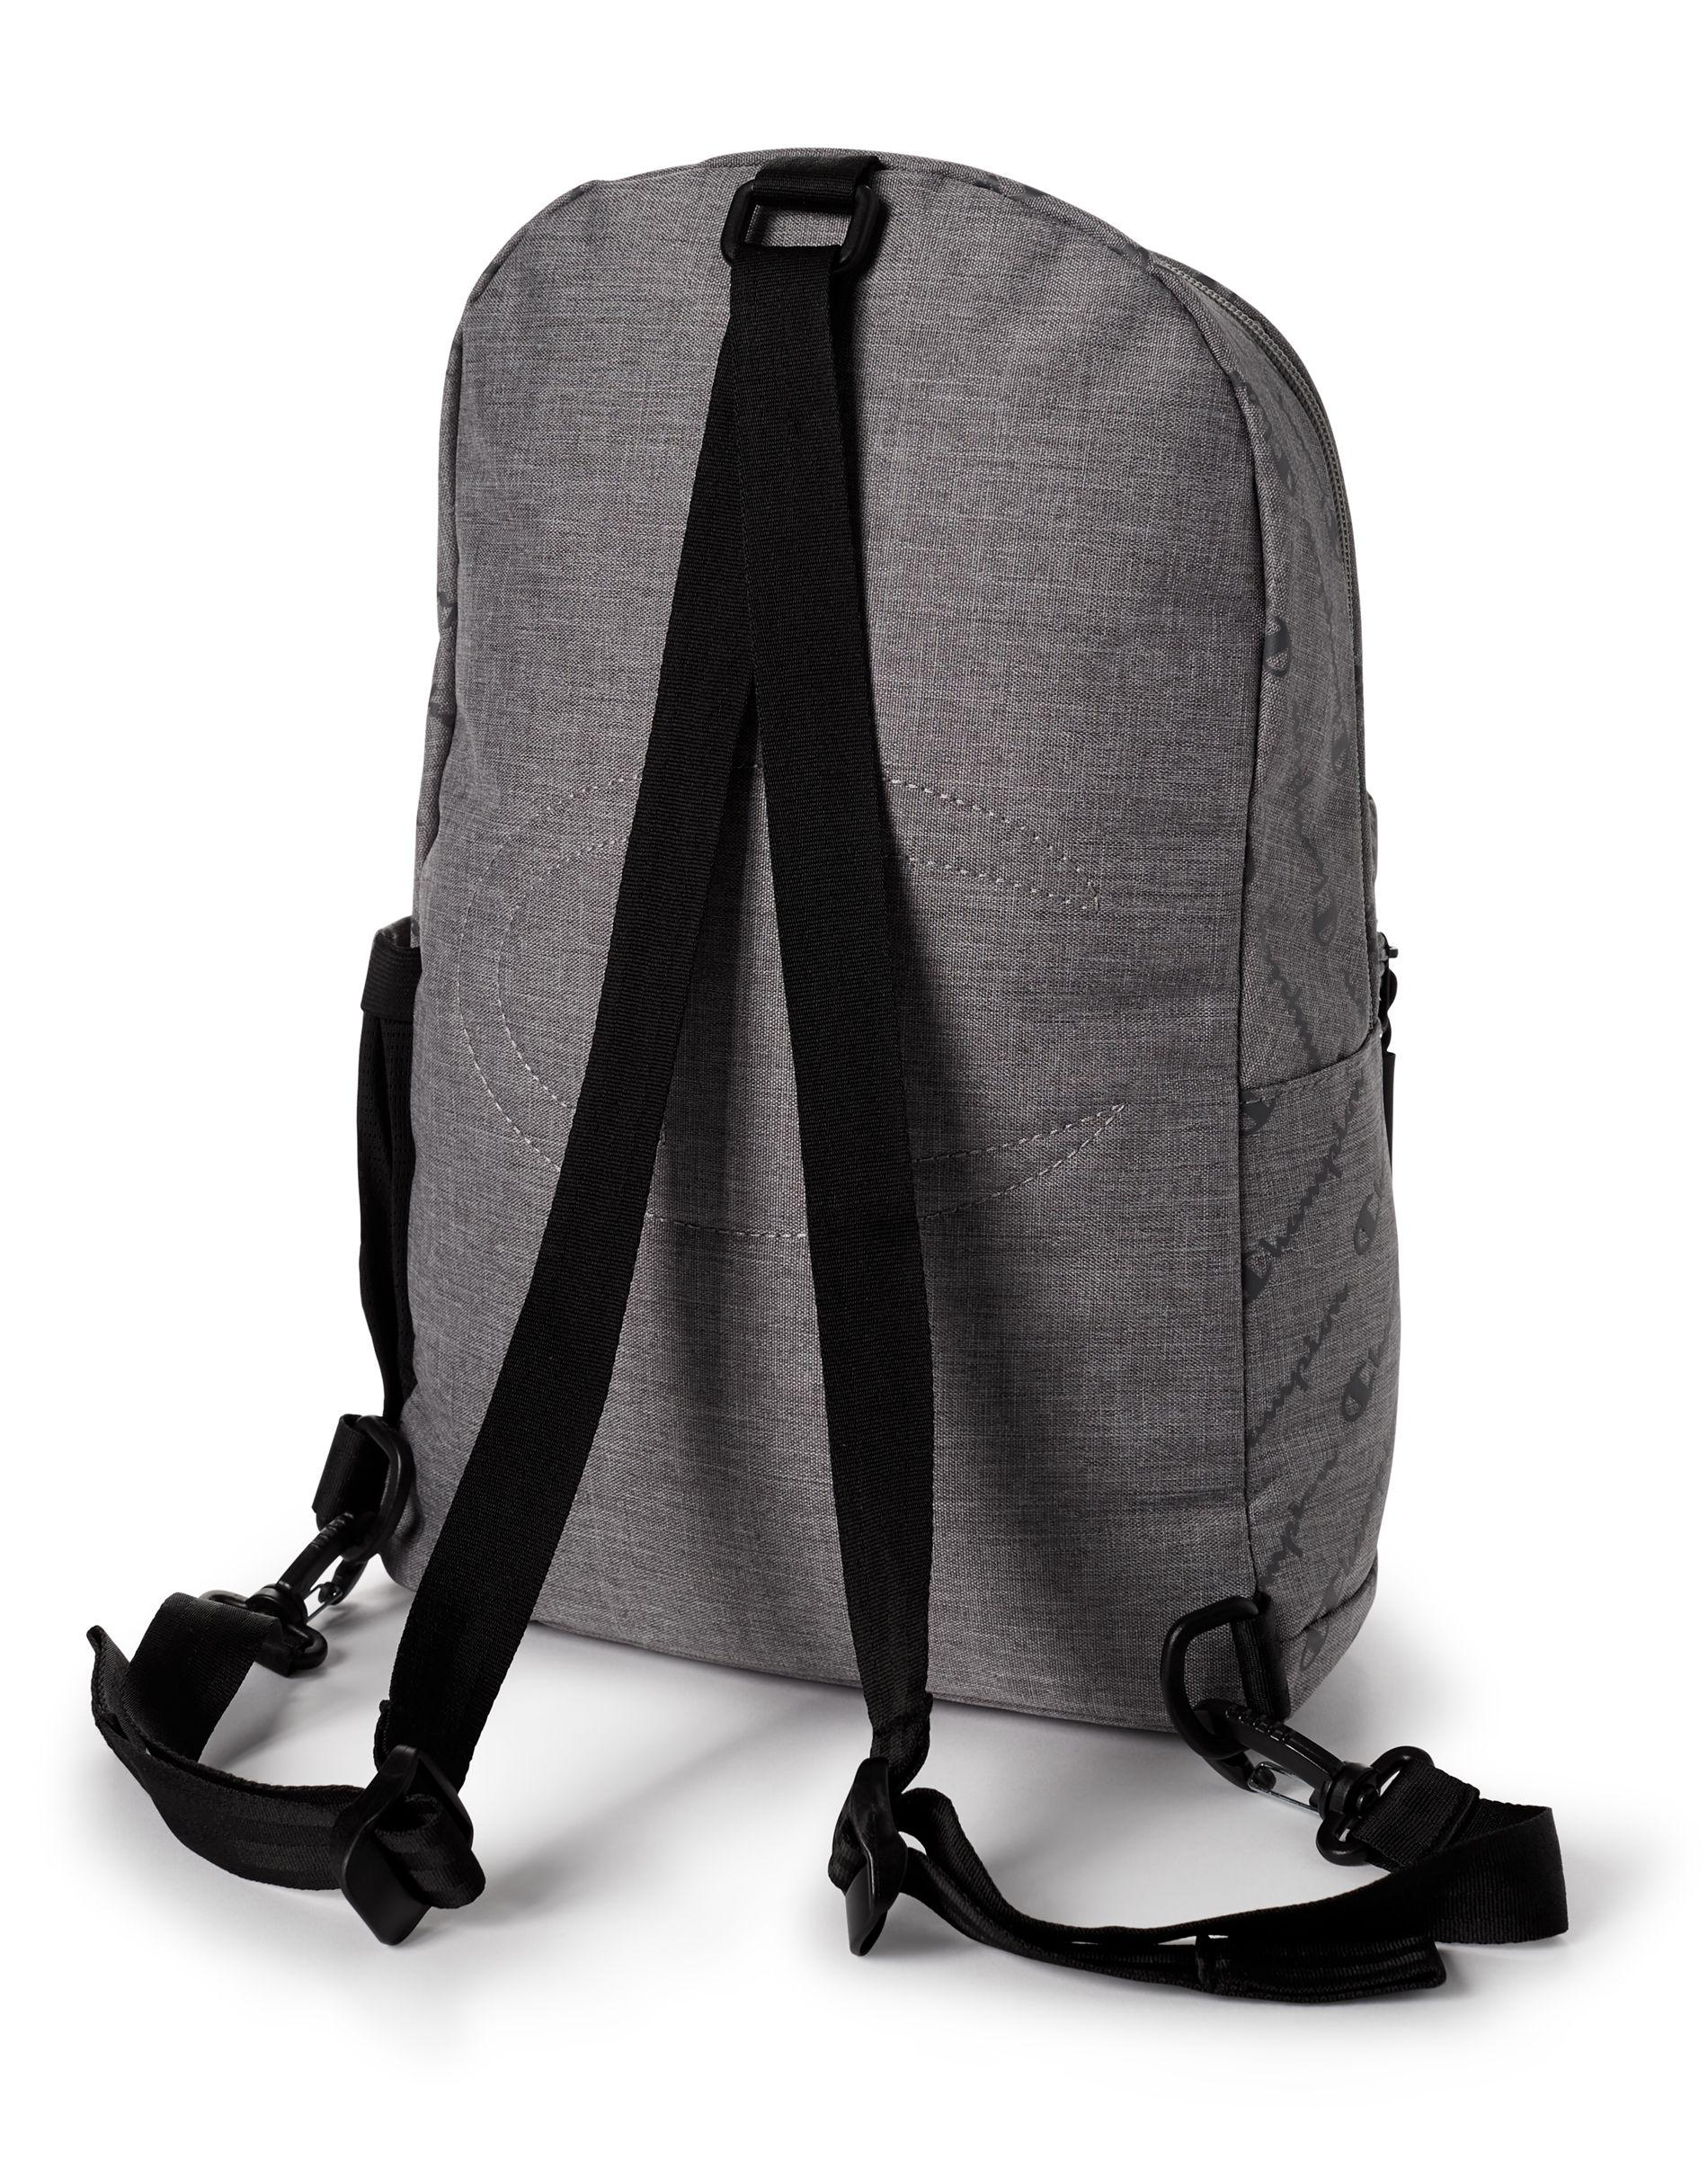 Lyst - Champion Mini Supercize Cross-over Backpack in Gray for Men - Save  28% 05927cadd6326